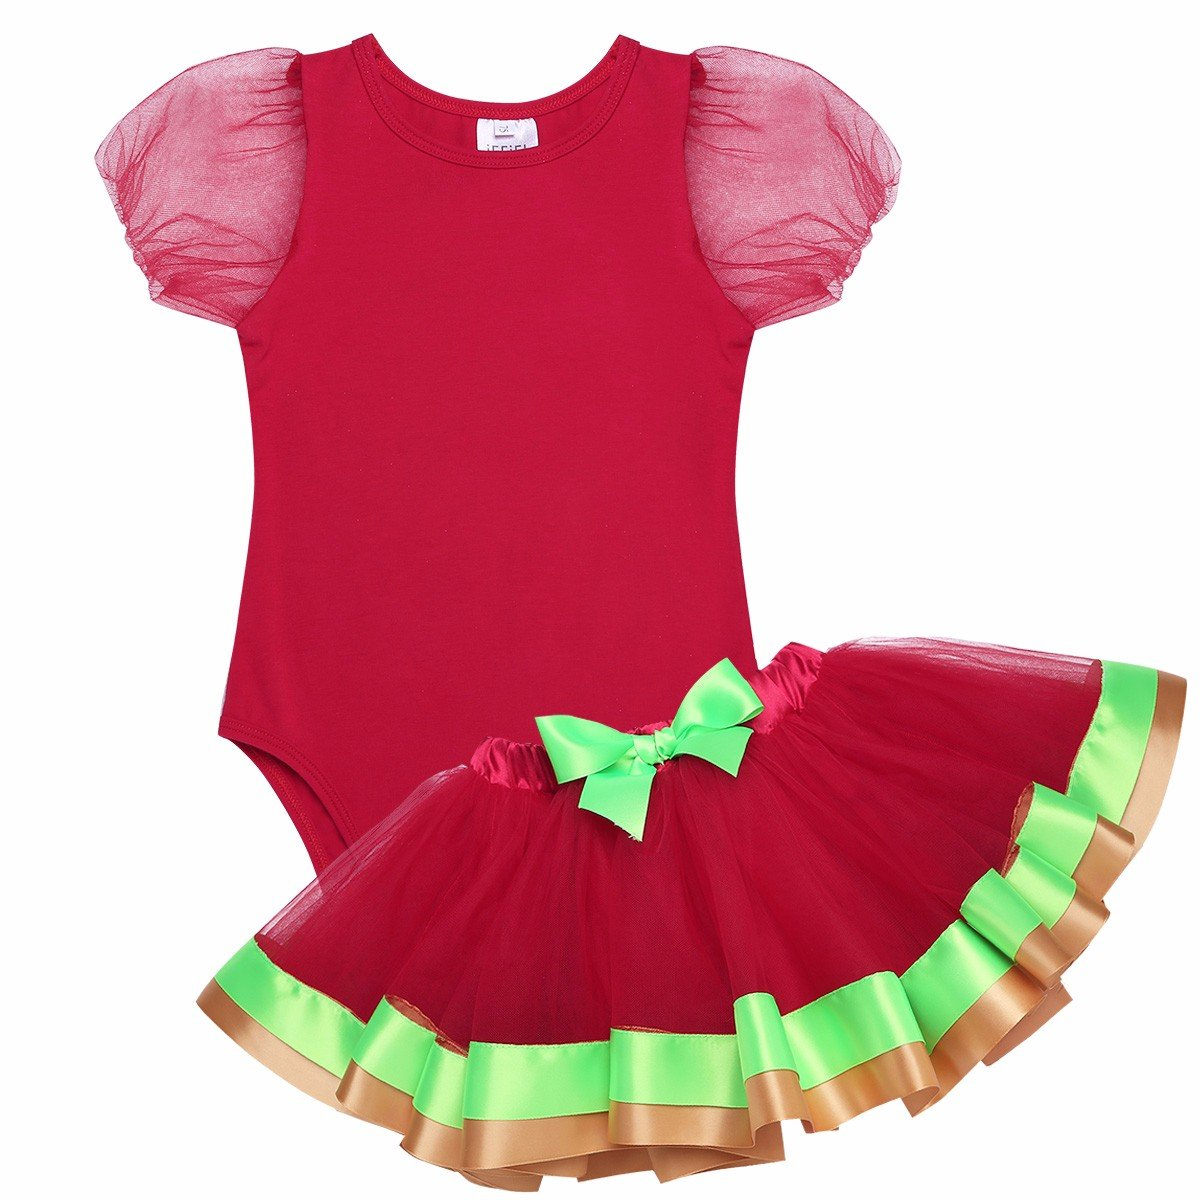 iEFiEL Infant Baby Girls Christmas Birthday Outfit Short Bubble Sleeves Bodysuit With Tutu Skirt Clothes Set